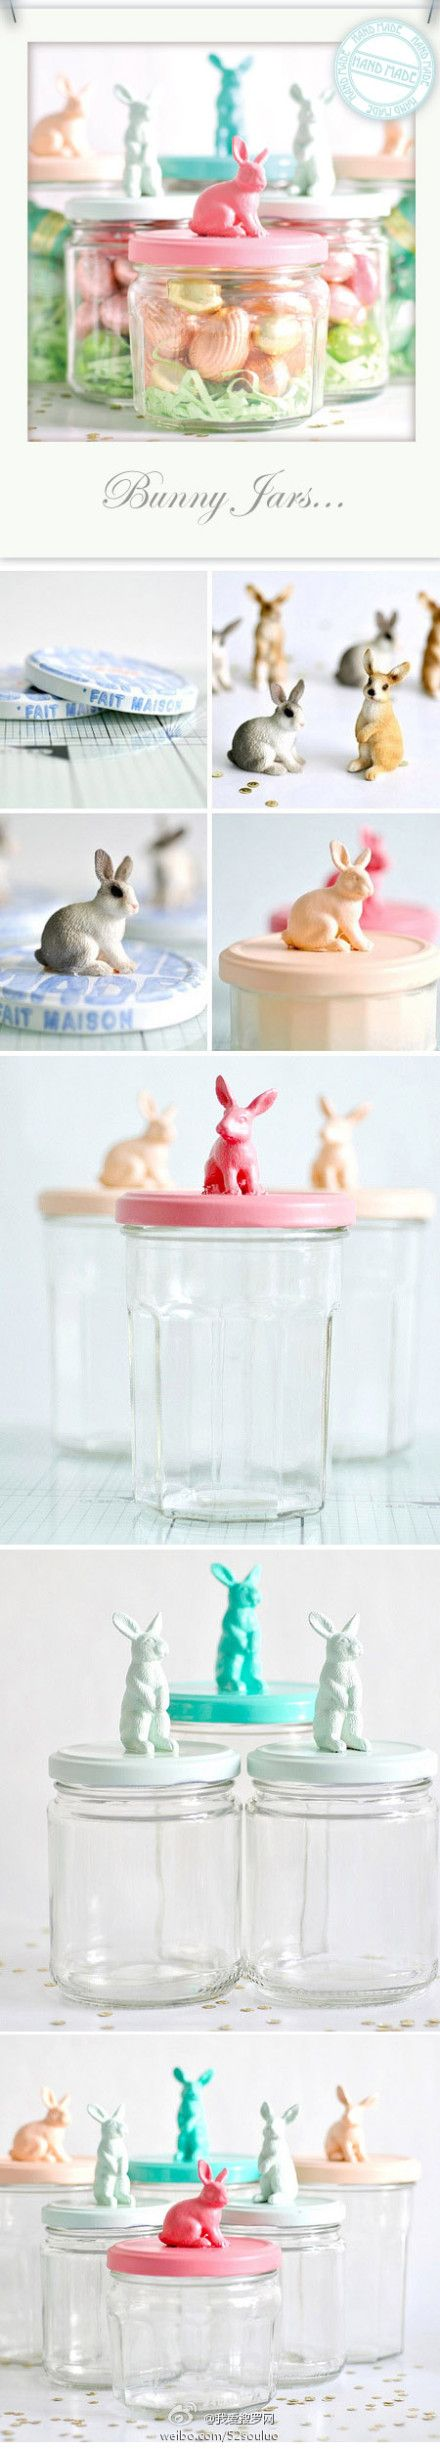 DIY bunny jars. Cute for little girls hair accessories